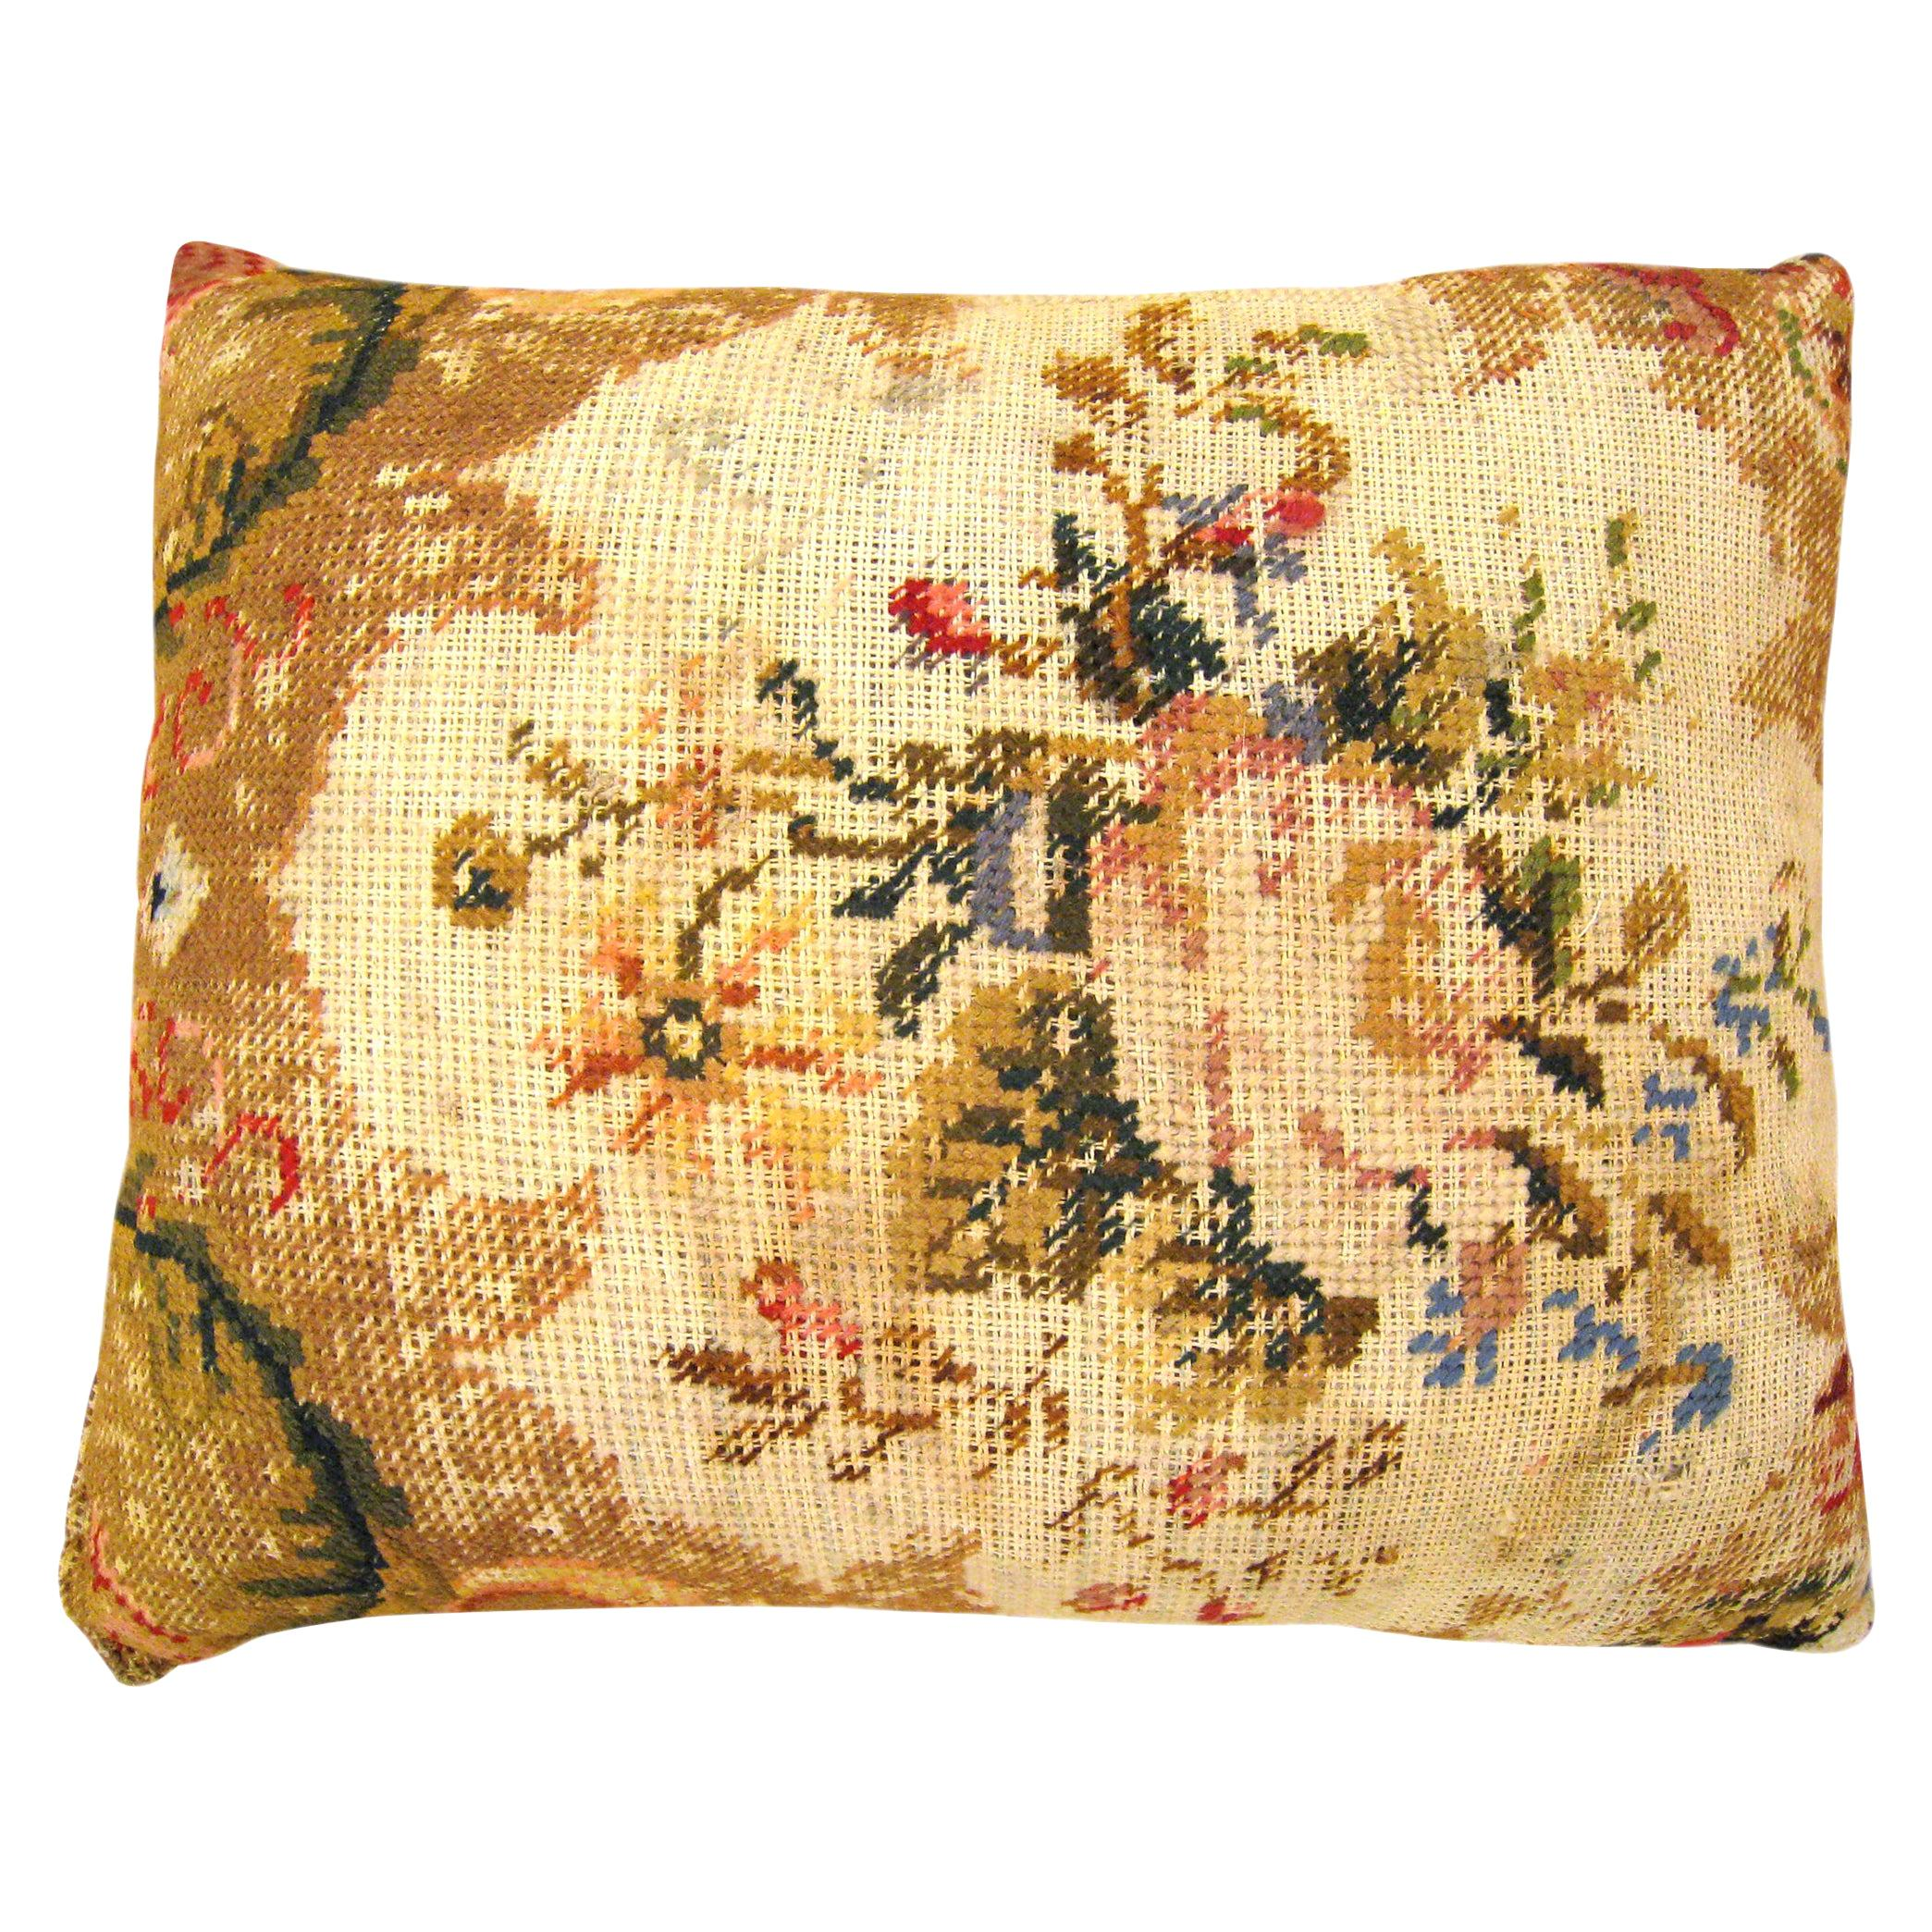 Vintage Decorative English Needlepoint Pillow, with Terracotta Linen Backing